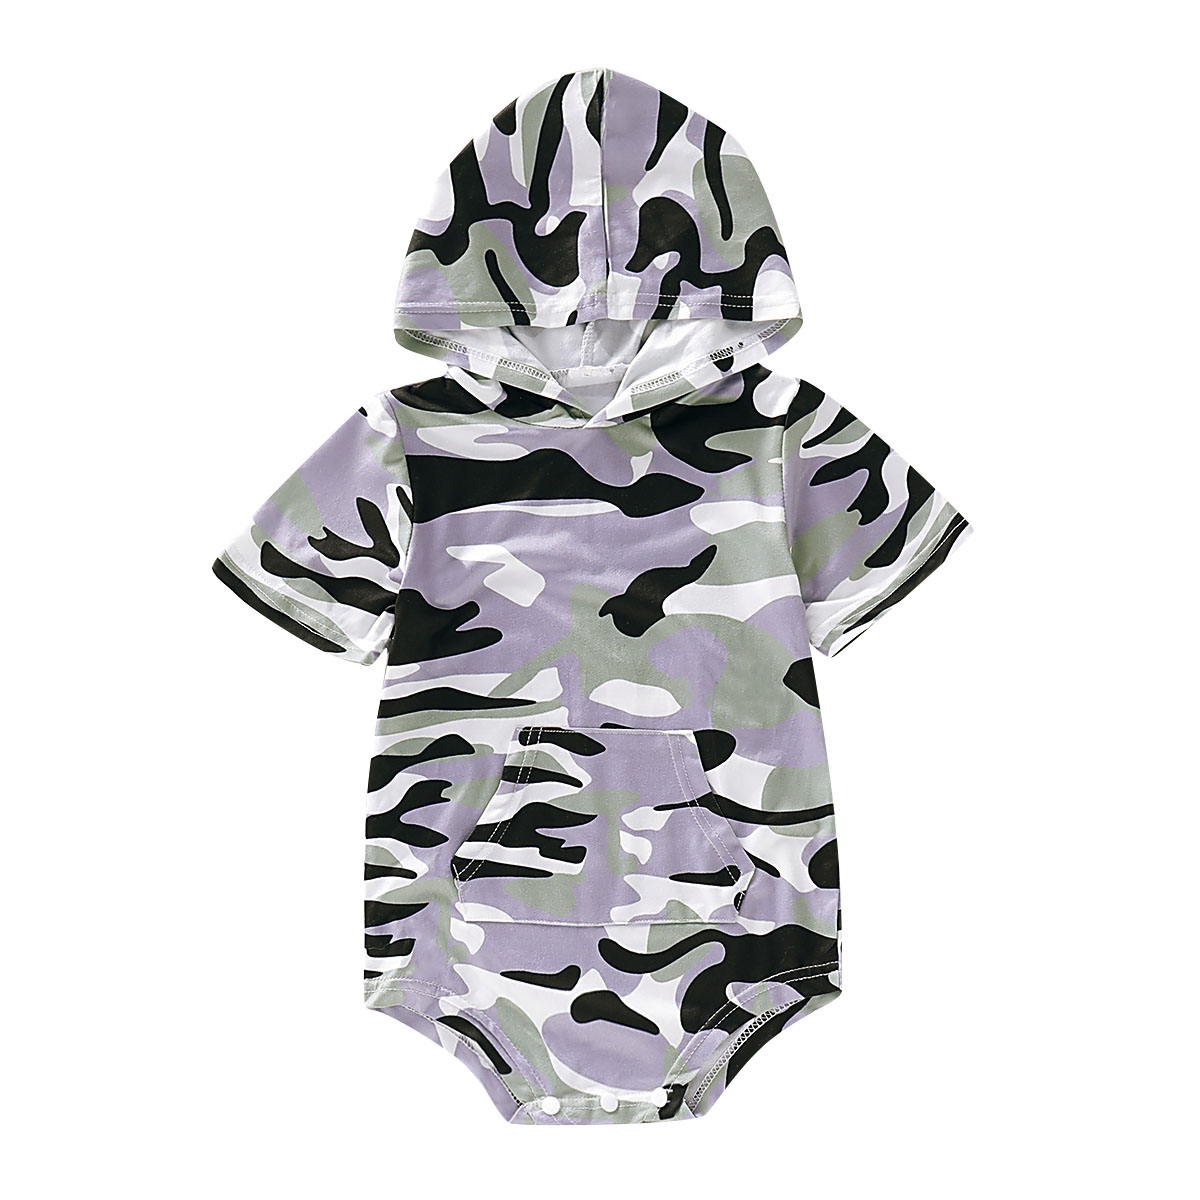 UK Infant Baby Boy 3M-24M Spring Clothes Camouflage Romper Jumpsuit Bodysuit Outfit